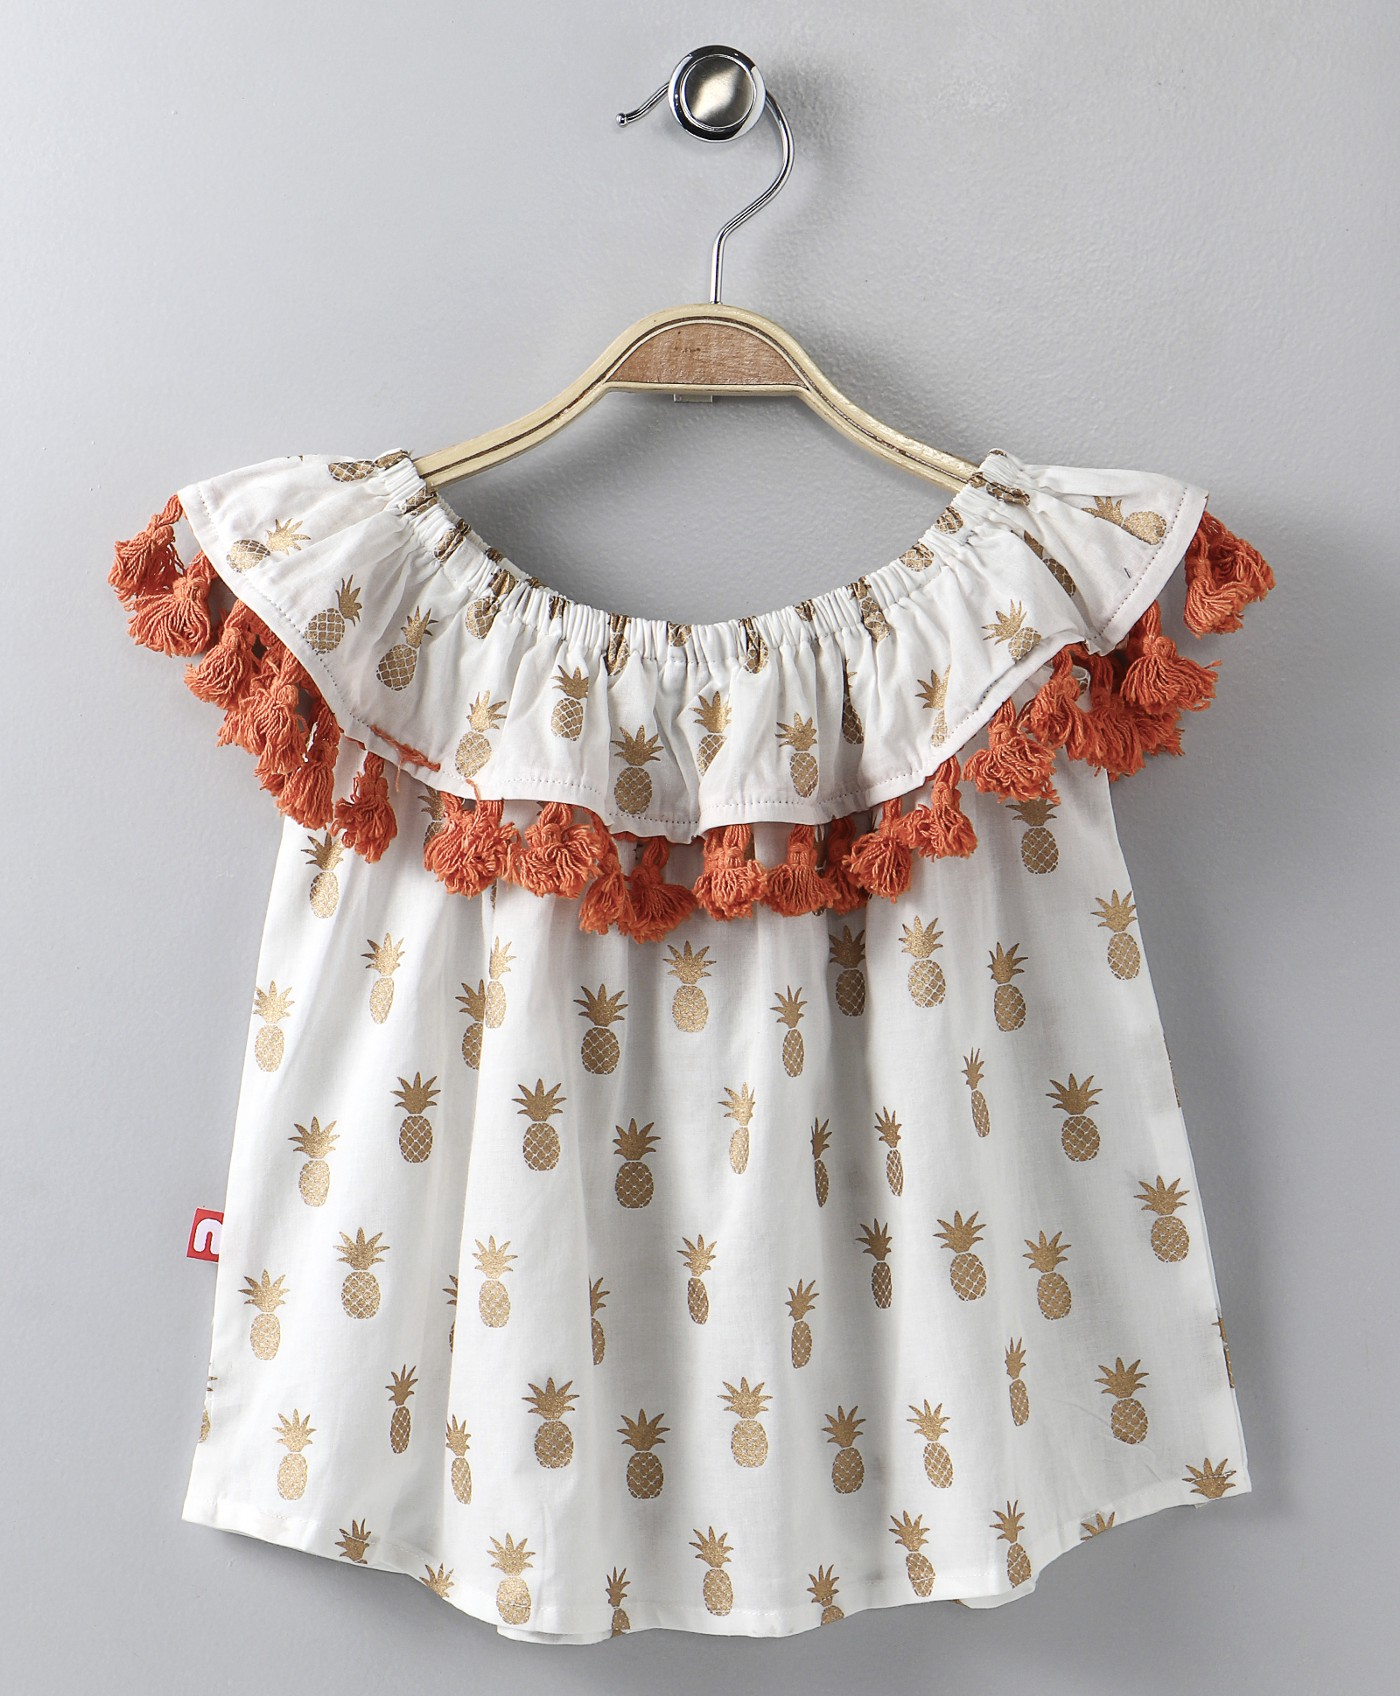 f003c249a98df Baby Girl Dress Designs For Stitching 2019 Fashion Stitching Baby ...